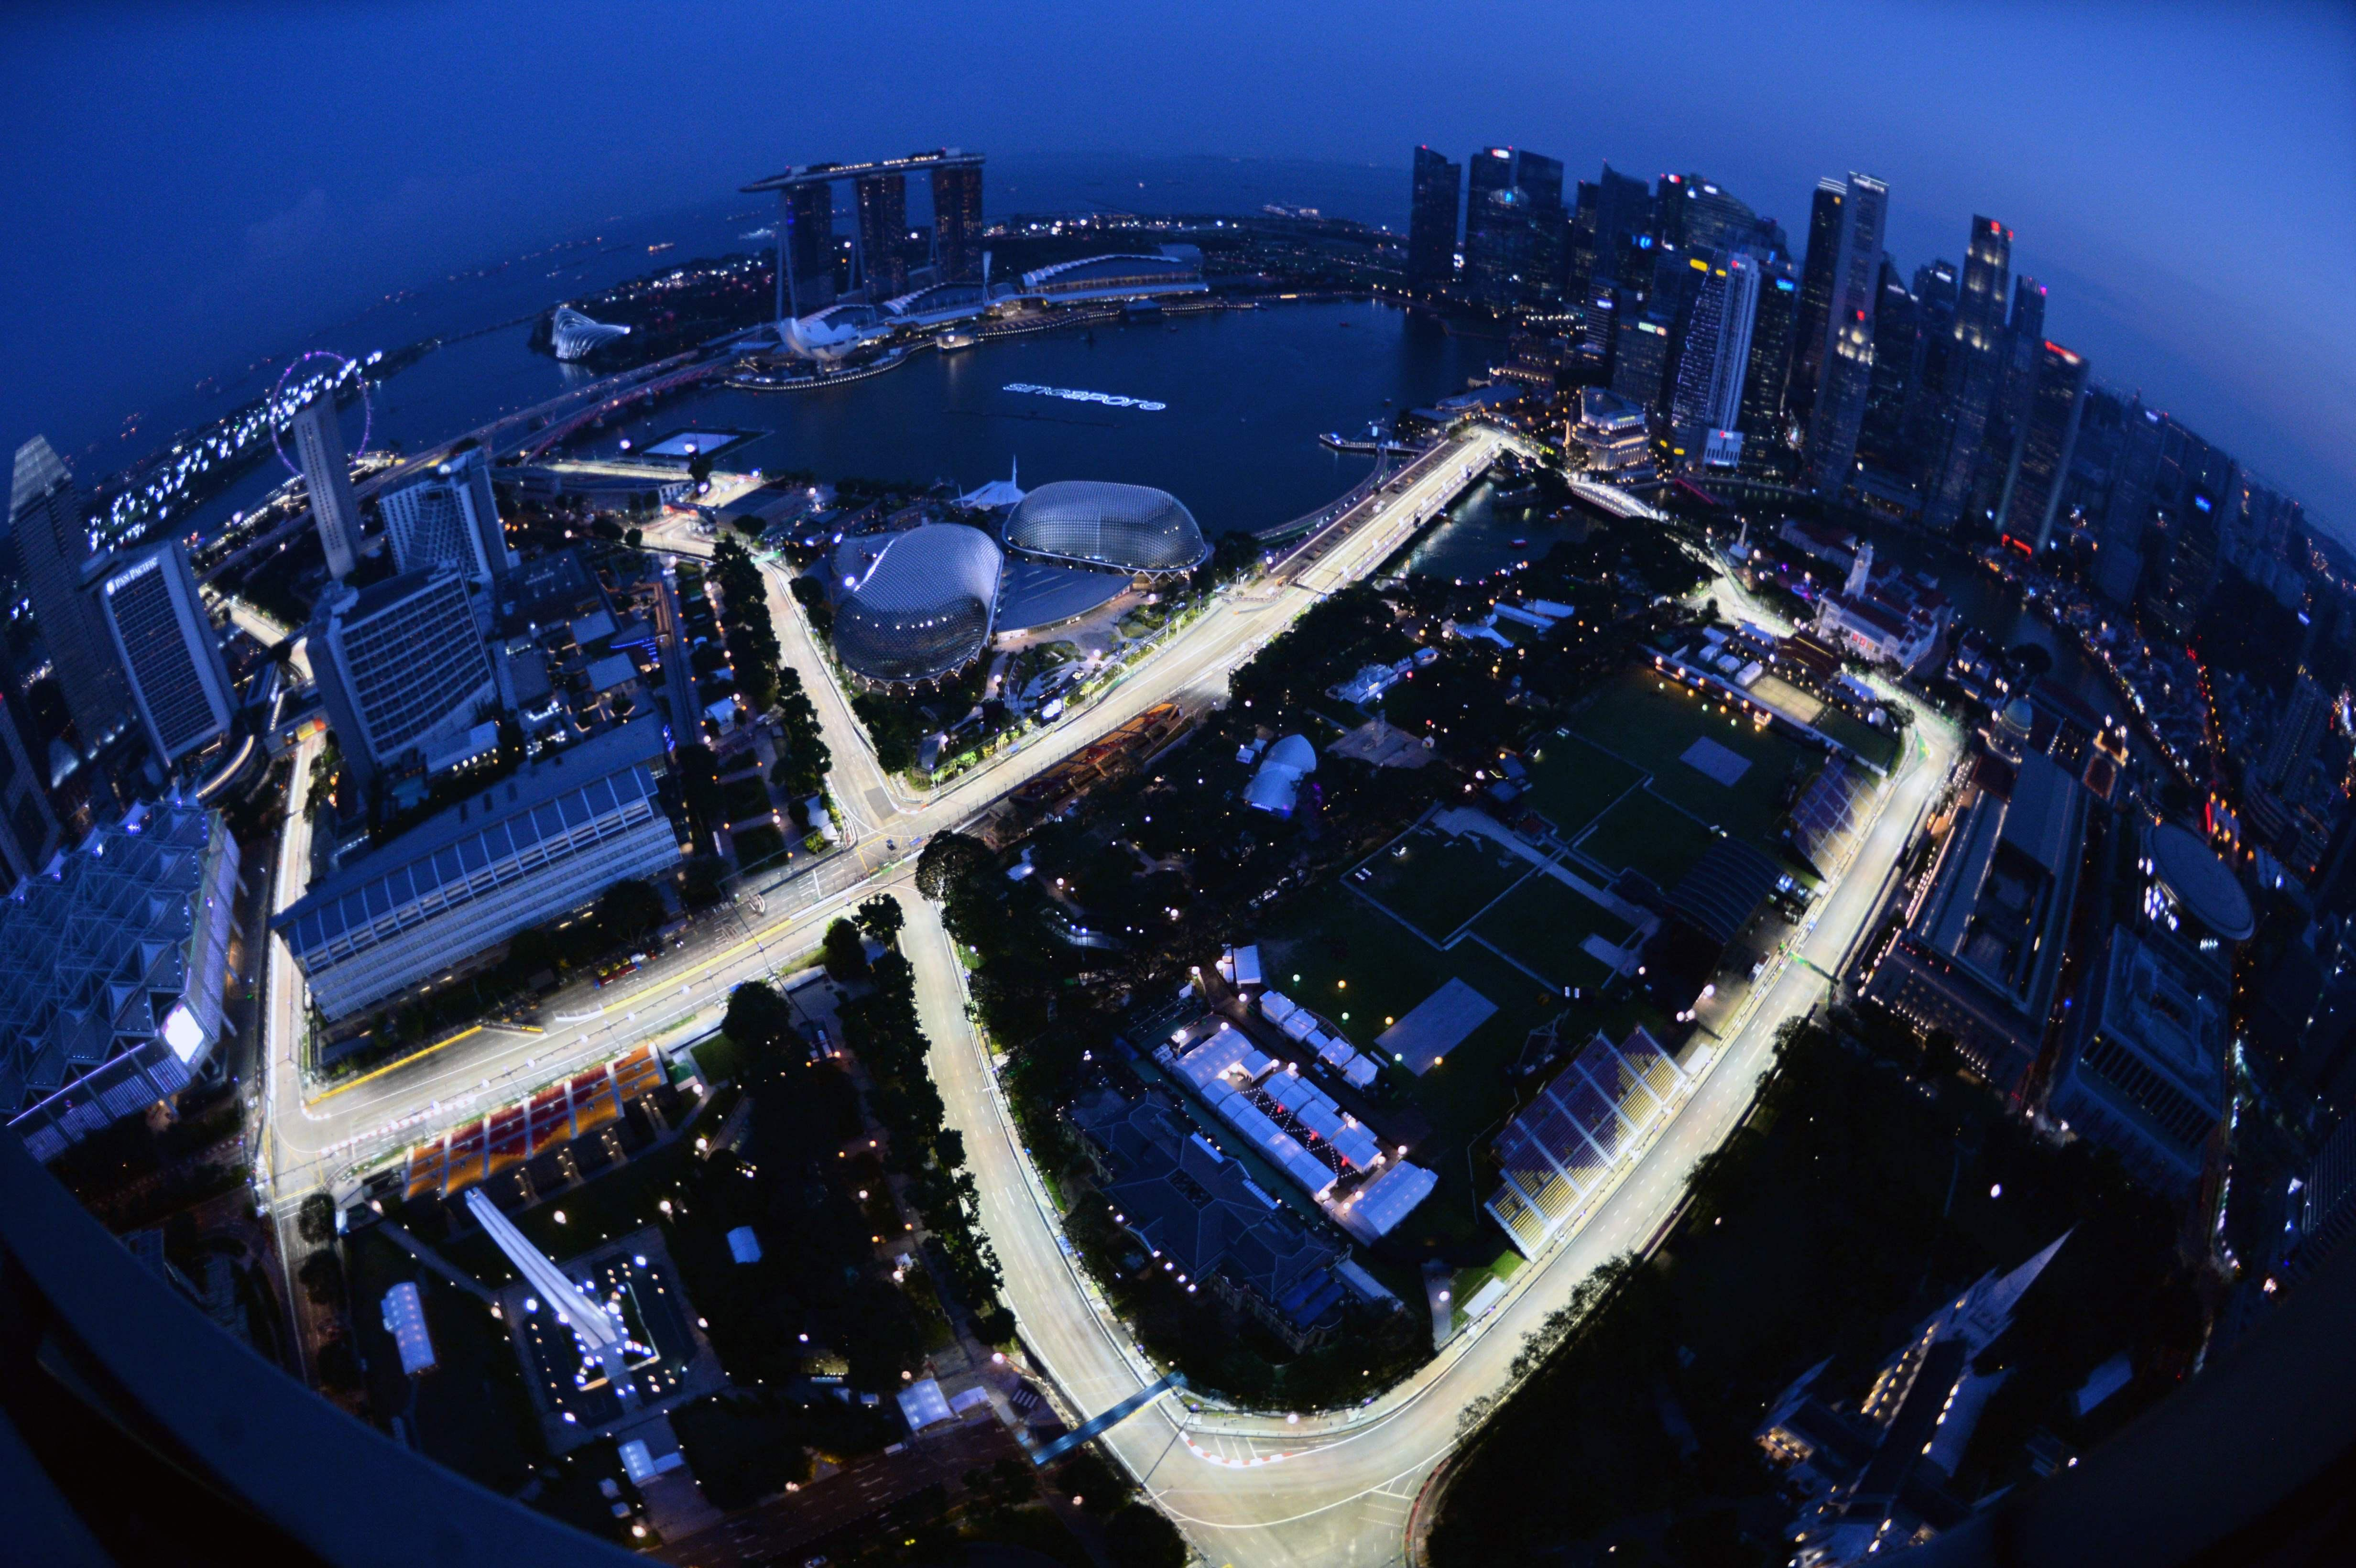 The Singapore Grand Prix is Formula One's first ever night race